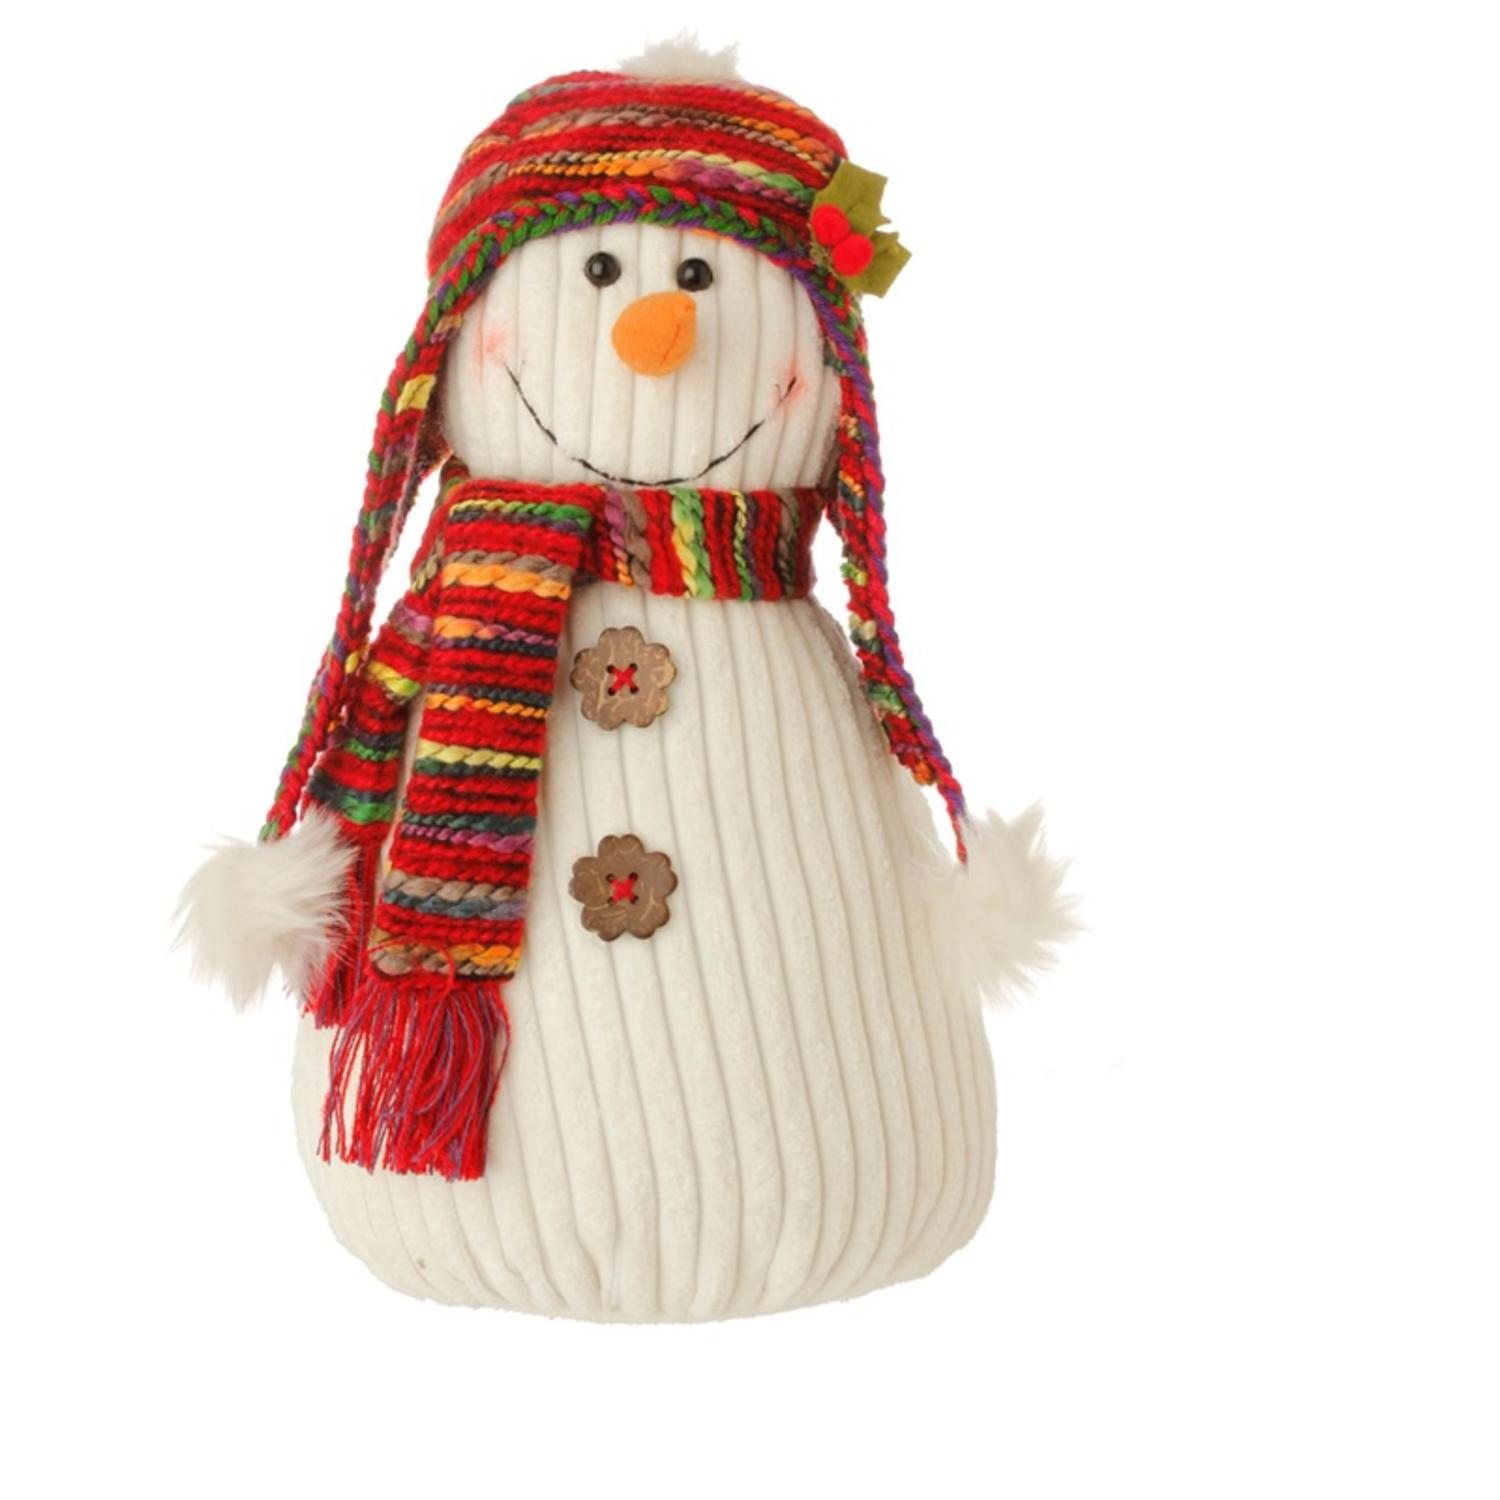 "18"" Bohemian Holiday Plush Snowman w/ Colorful Knit Hat and Scarf Christmas Decoration"